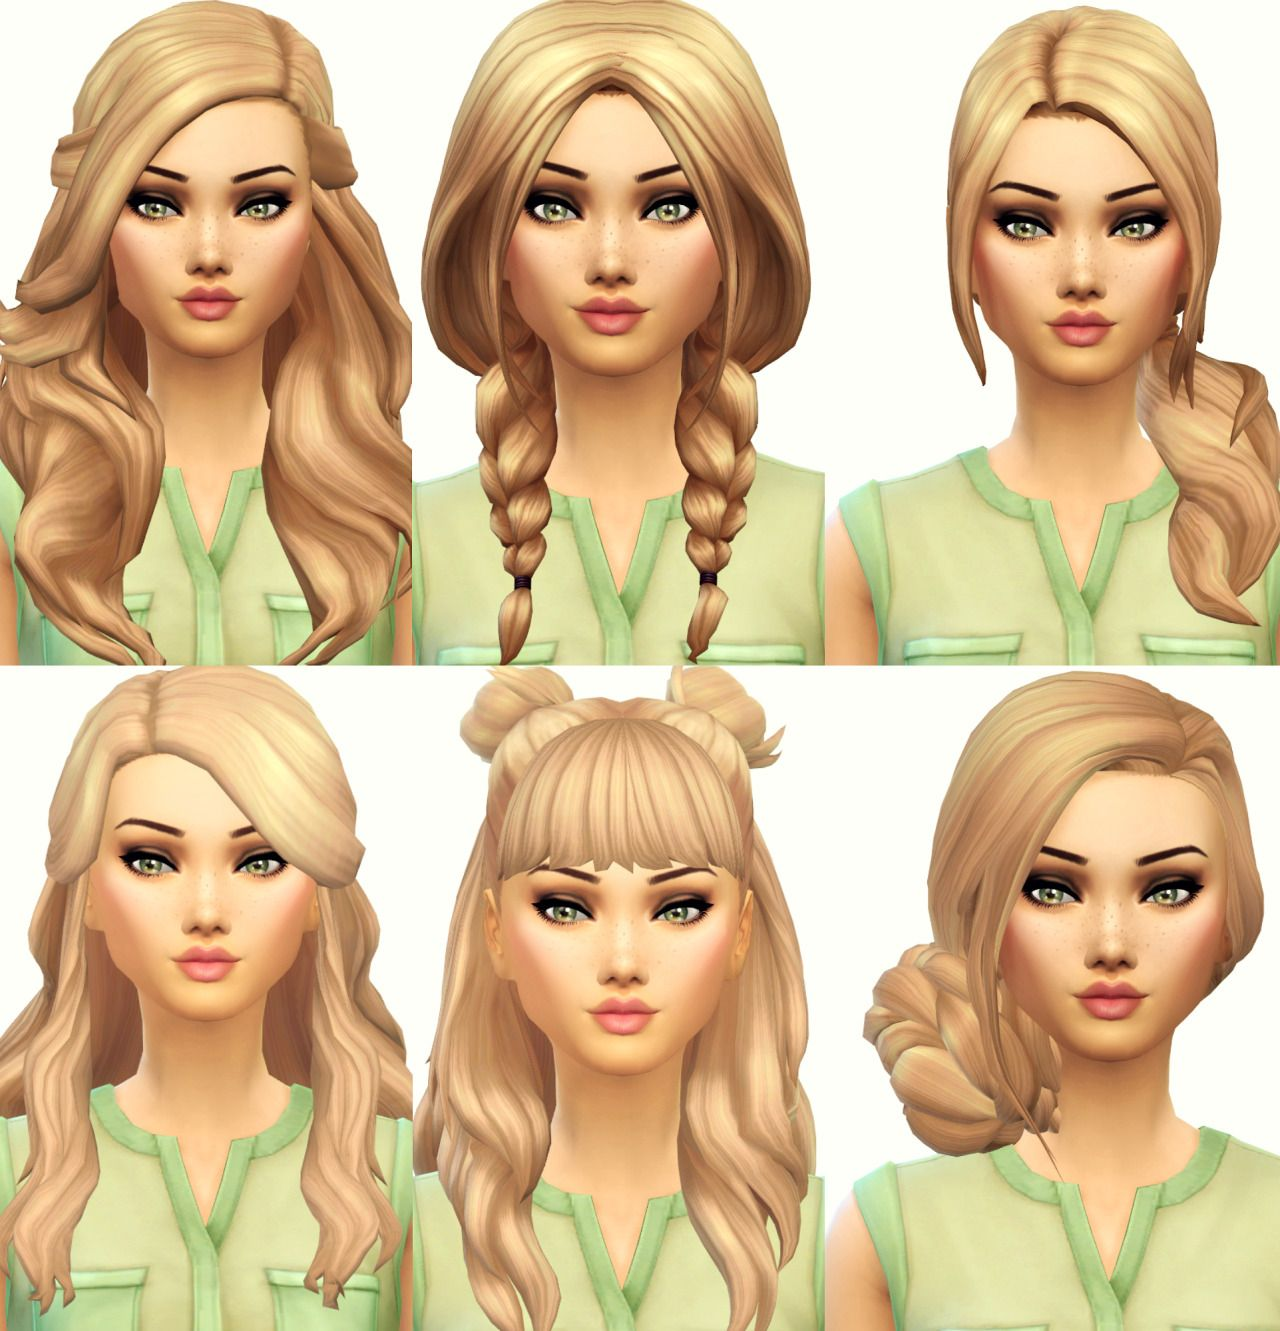 Current Favourite Maxis Match Hair From Left To Right Then Down And Left To Right Again Hair 1 X By Wildspit Hair 2 X By Pastelsims Sims Hair Sims 4 Sims